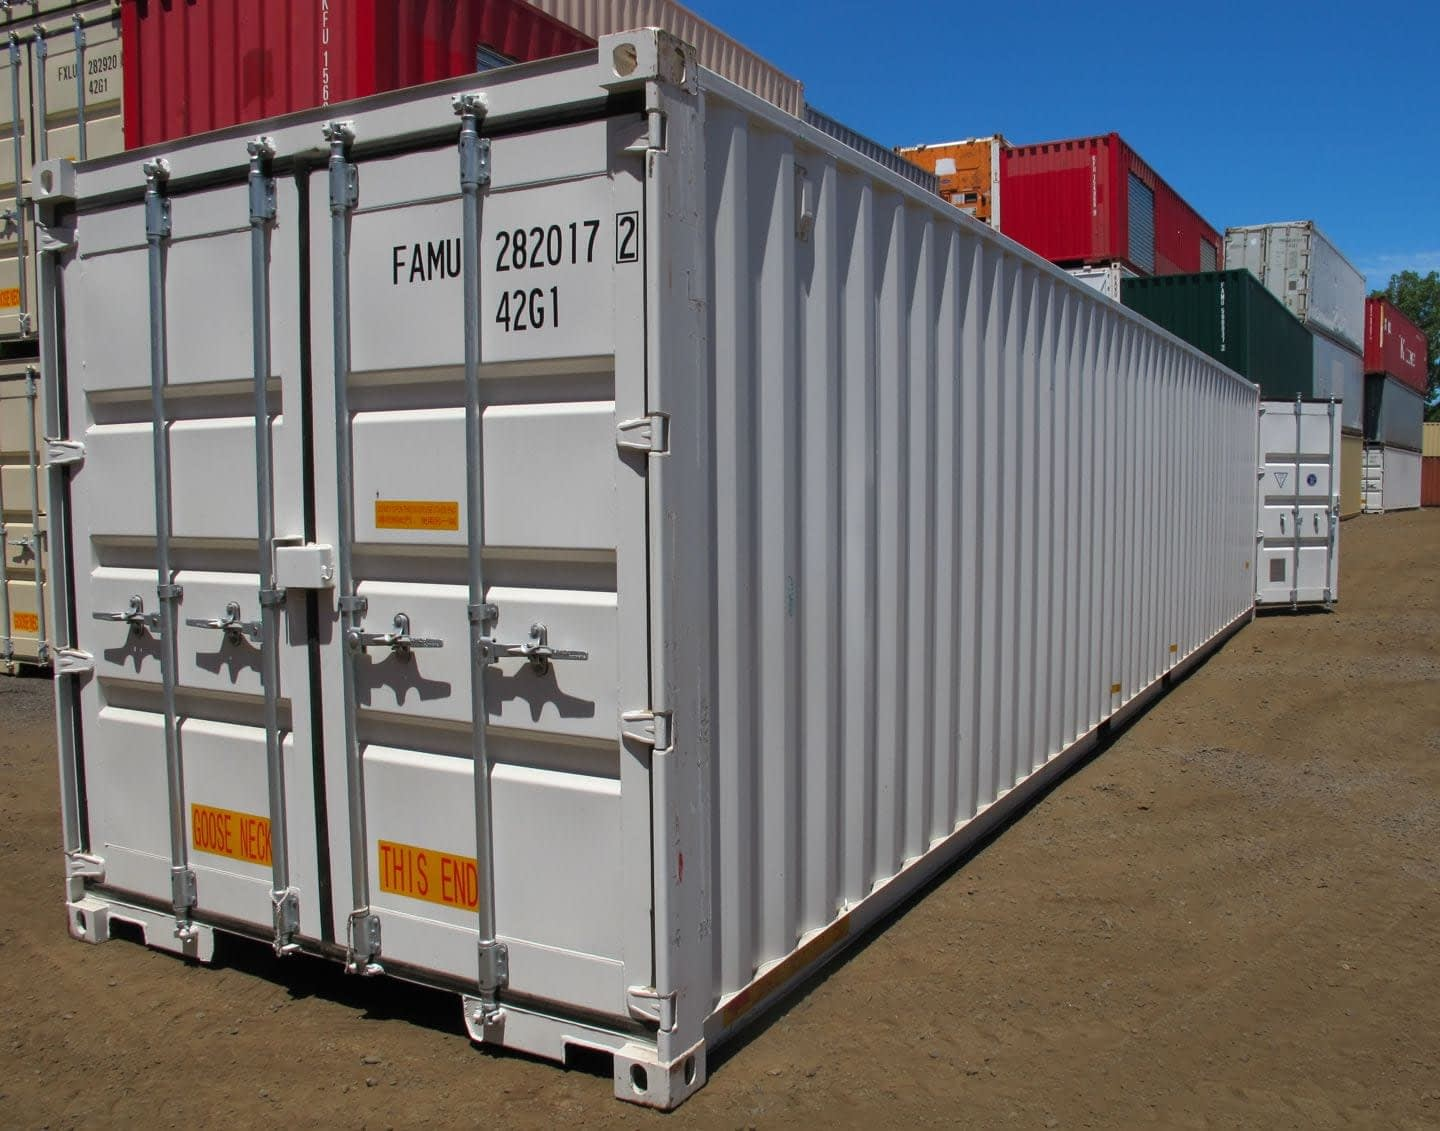 TRS Containers NJ sells new 40 ft long steel containers export, equpment enclosures and storage